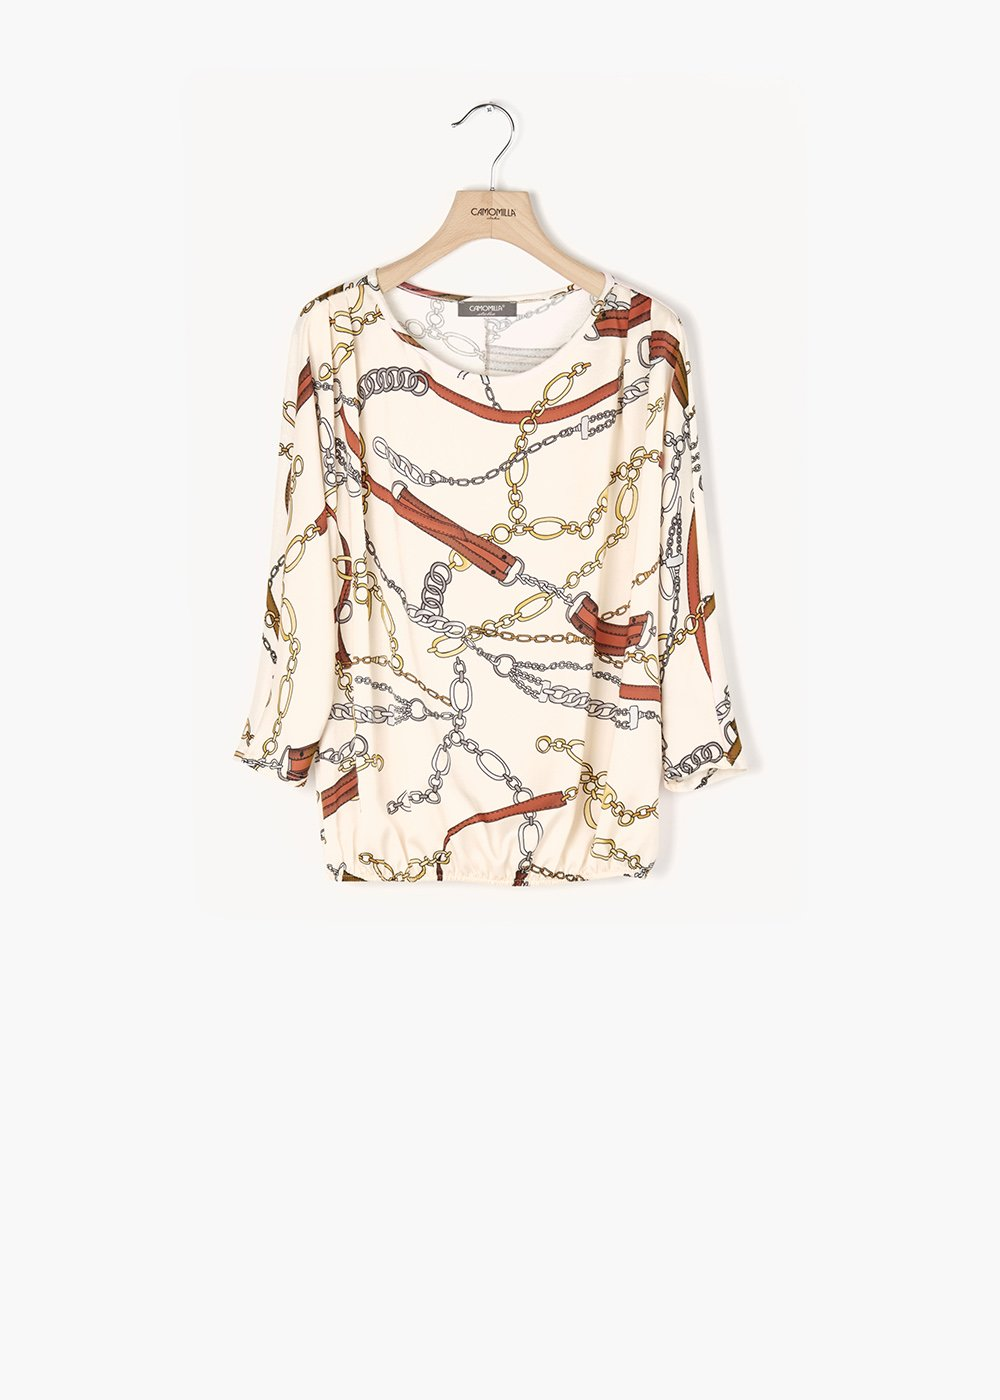 Chiara shirt with printed chains and buckles - Grezzo /  Sughero Fantasia - Woman